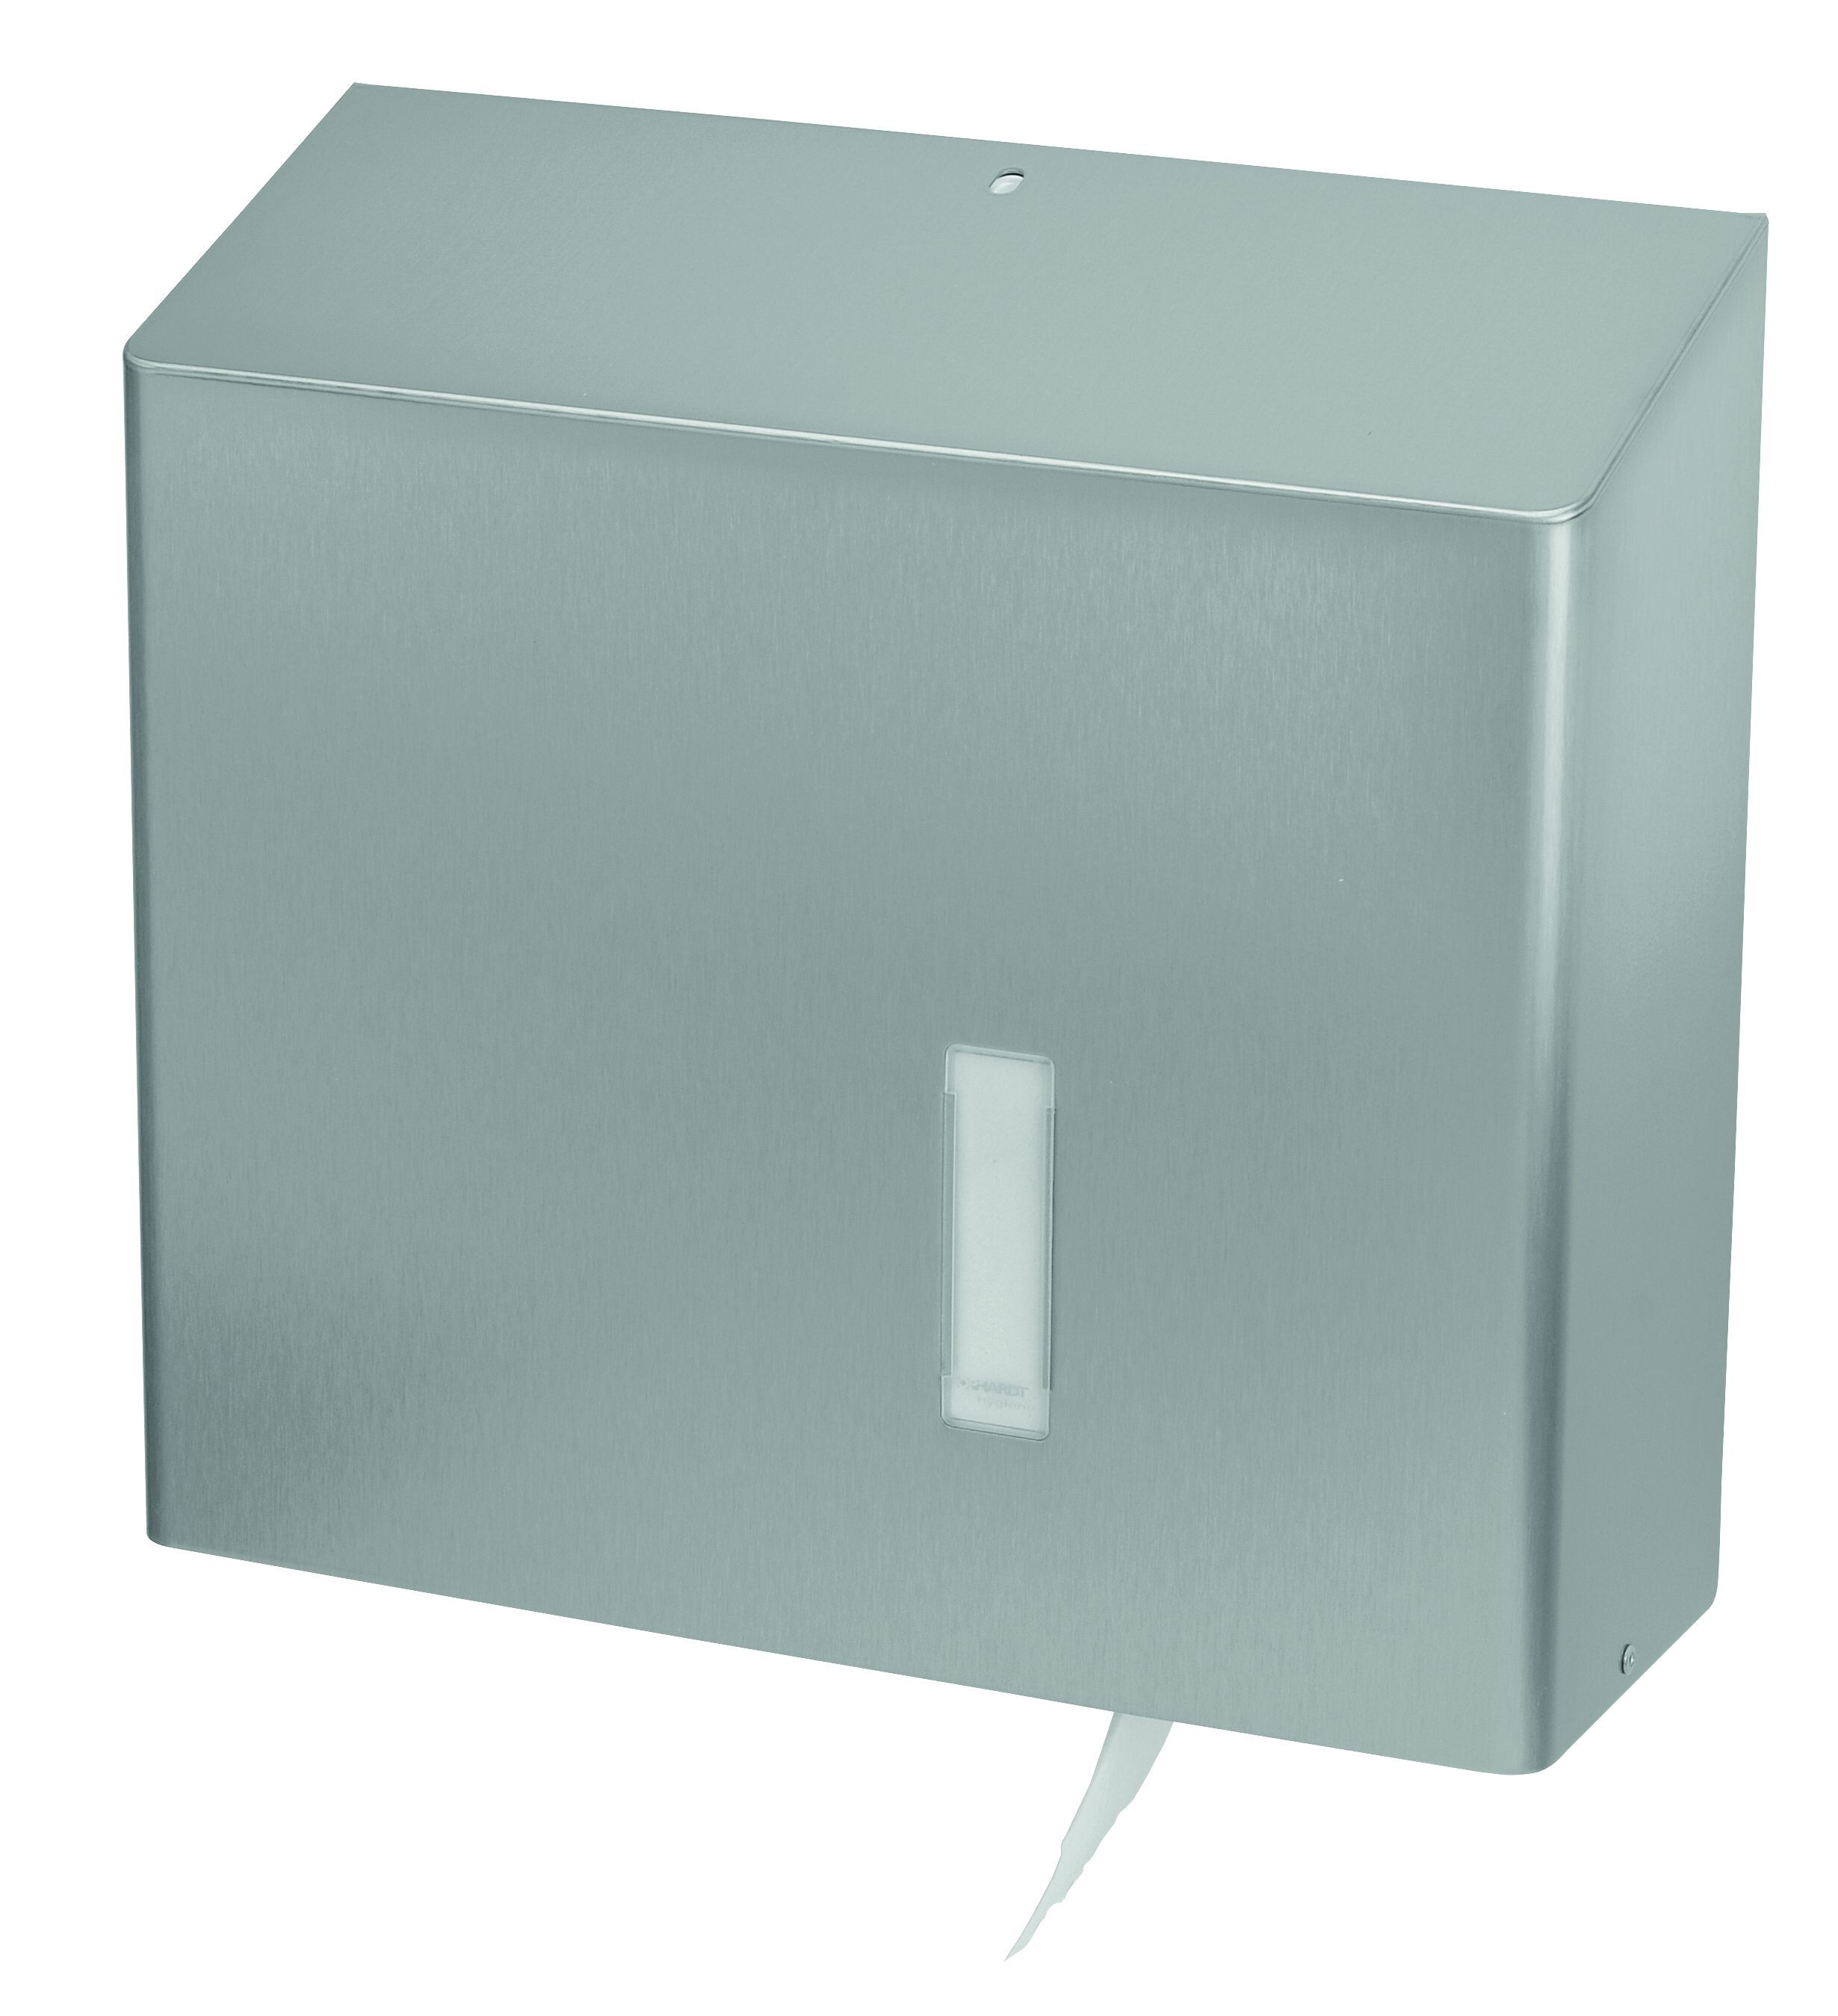 SANTRAL® RVS JUMBO TOILETROL DISPENSER Image